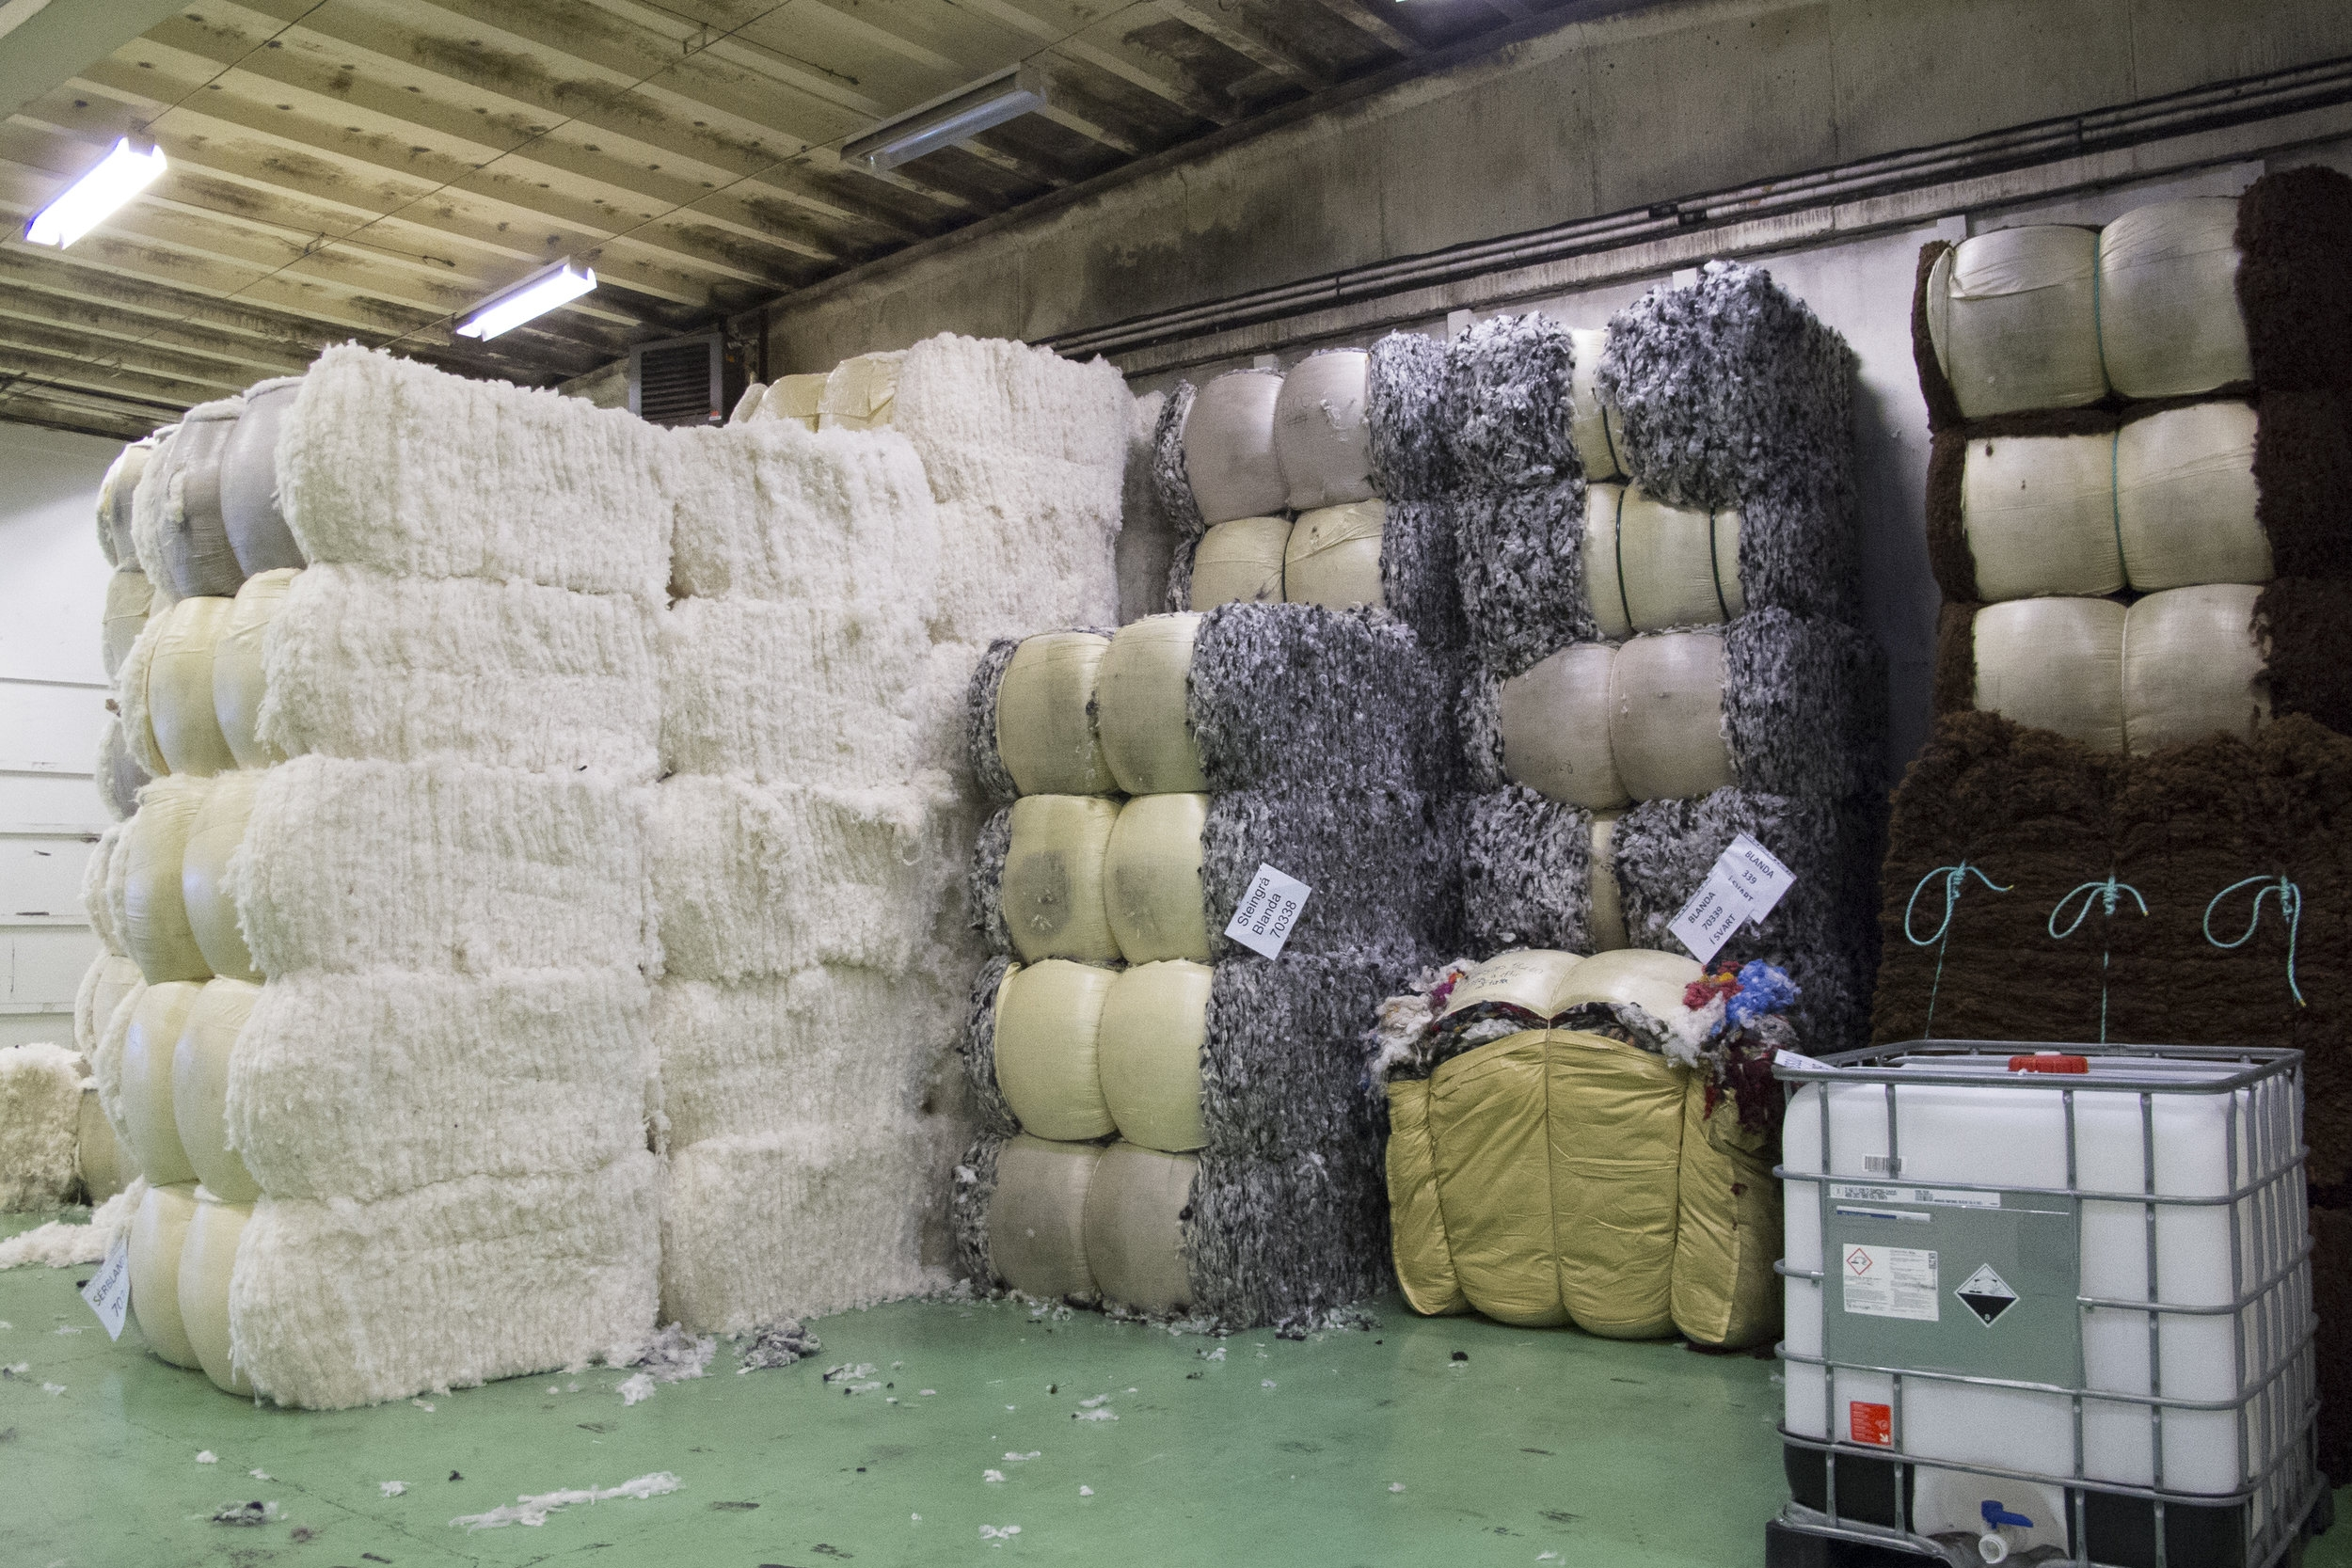 Washed fleece ready for processing